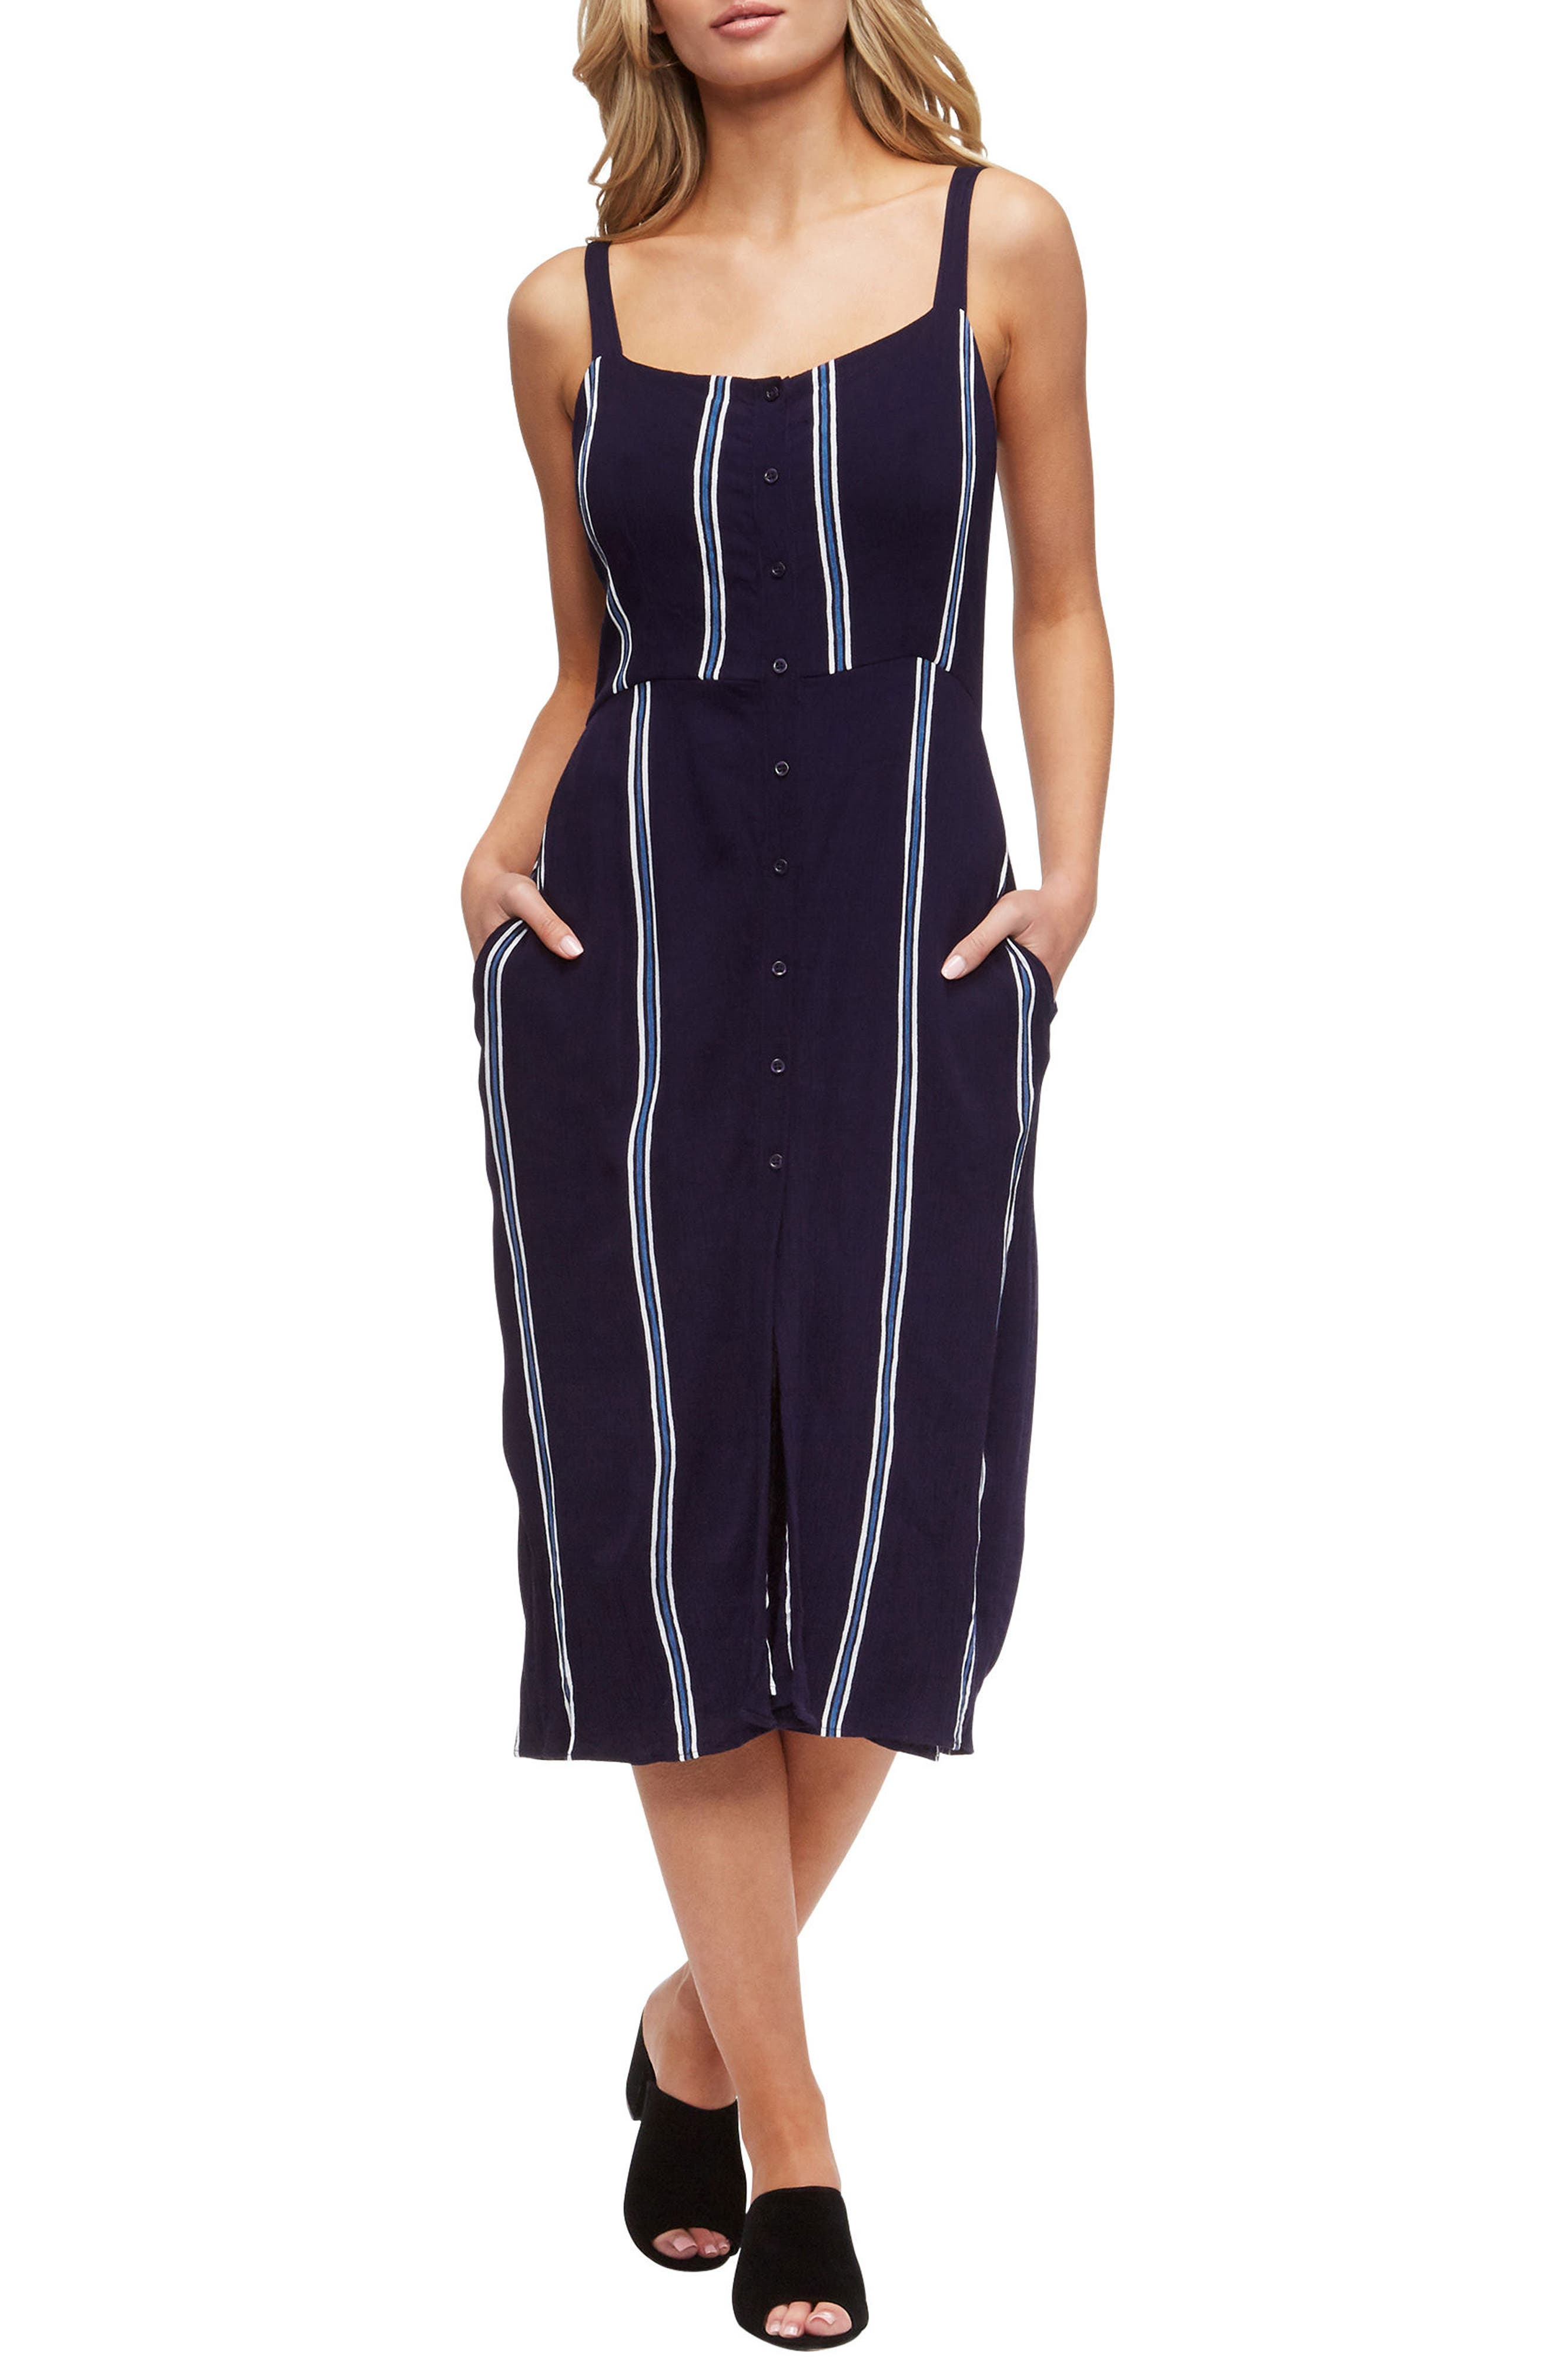 Geni Cover-Up Dress,                         Main,                         color, EVENING BLUE/WHITE STRIPE